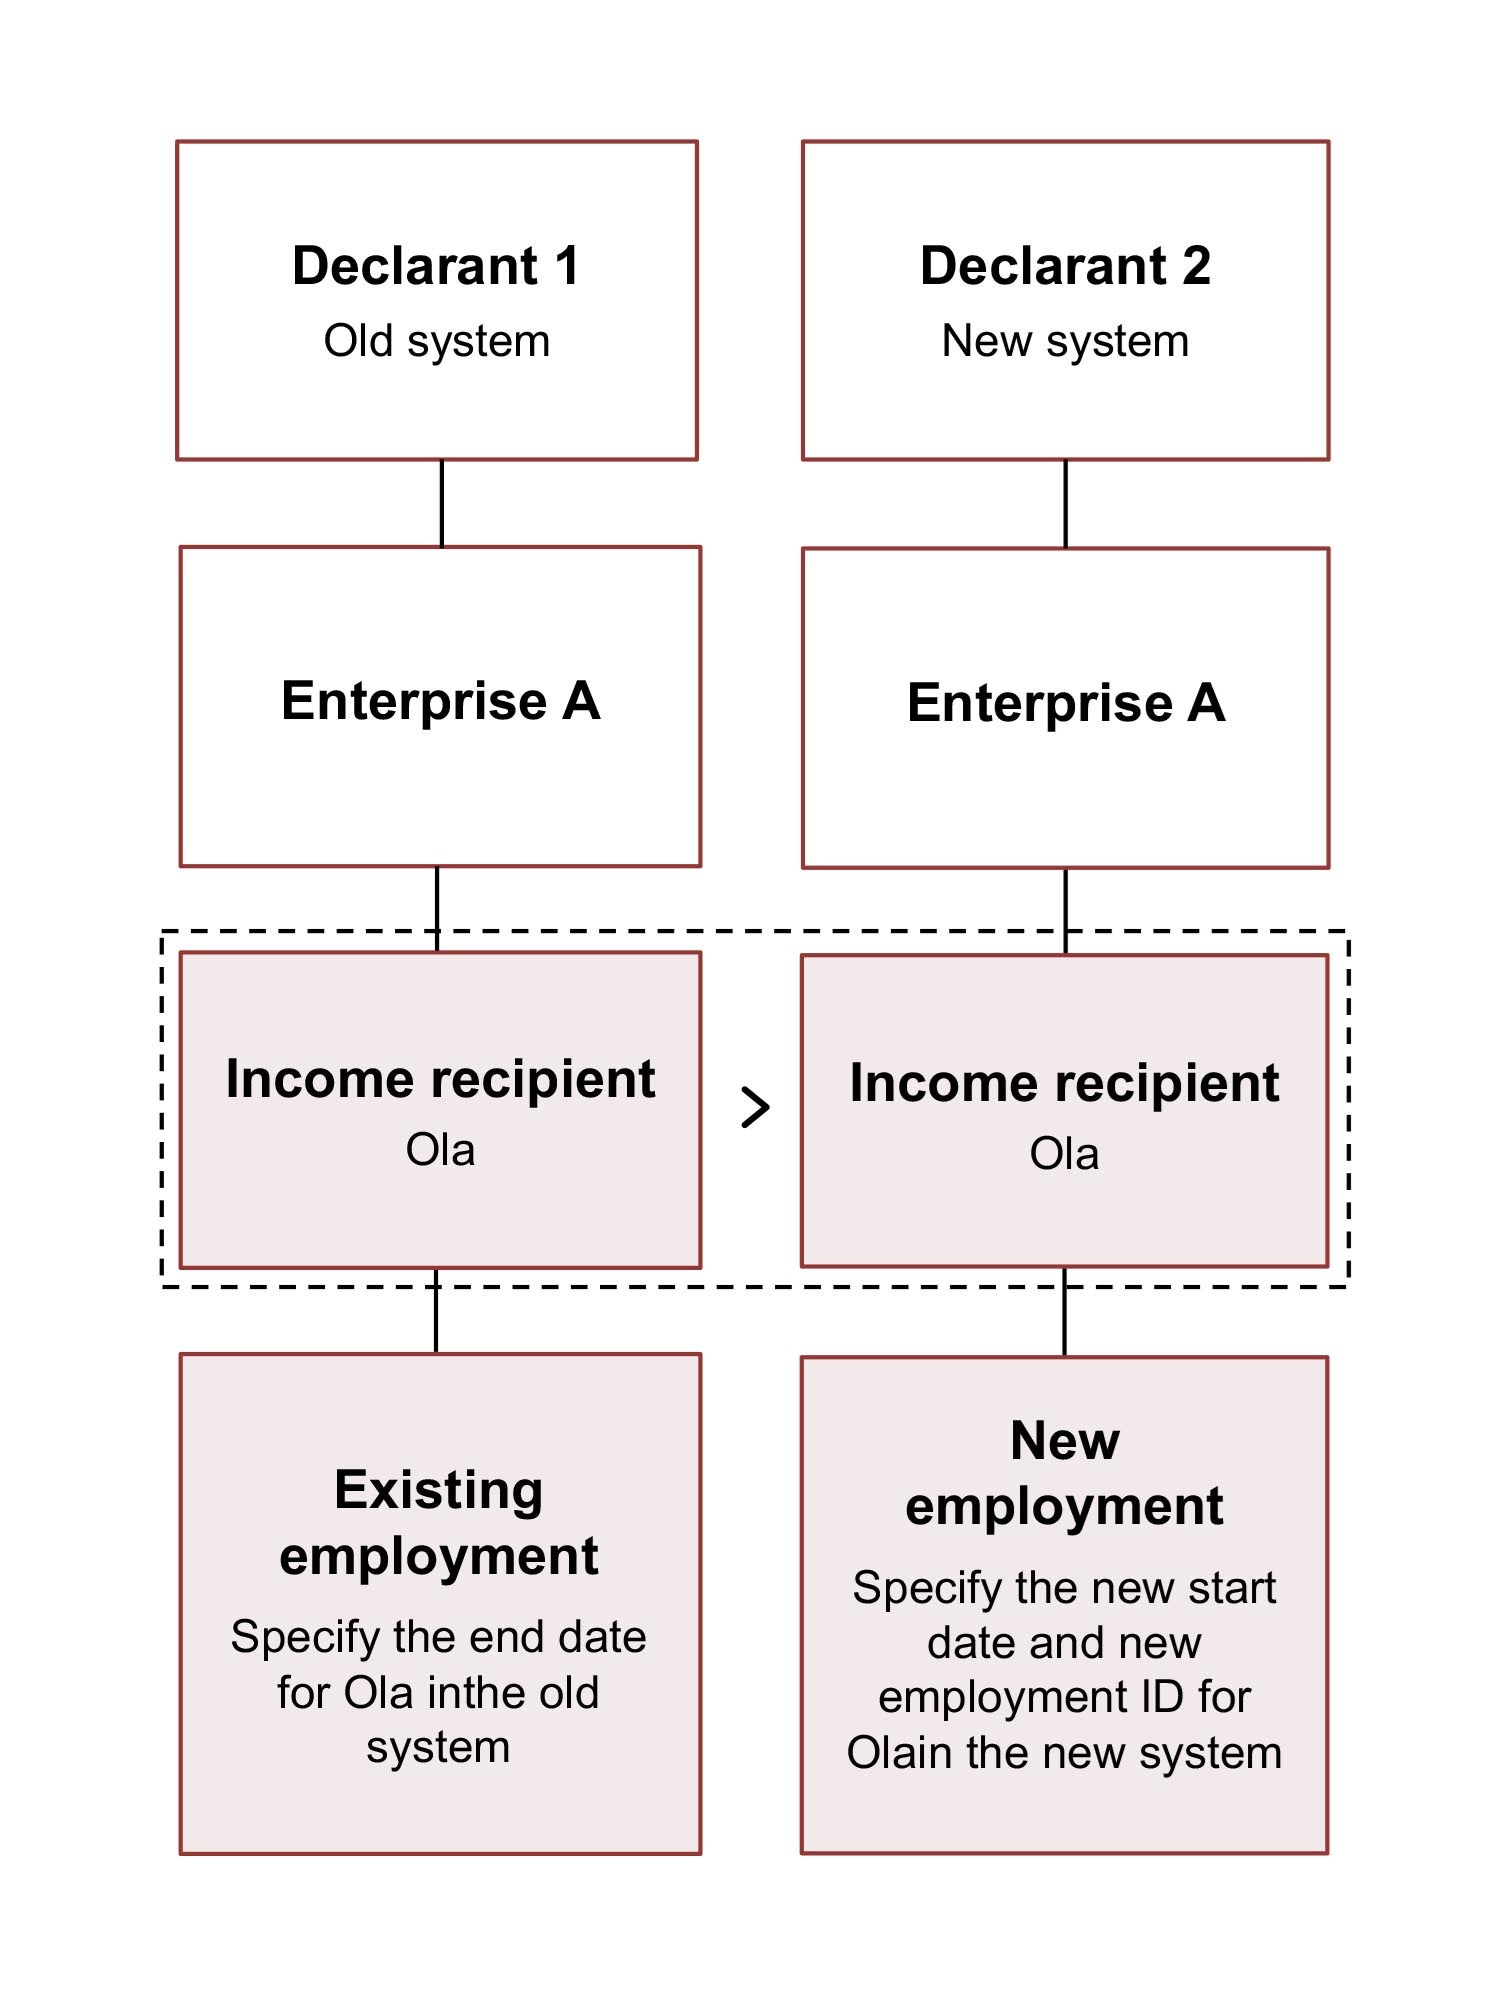 Diagram. Specify Ola's end date in the existing system. Specify Ola's employment with a new start date and new employment ID in the new system. The text in the article explains this in more detail.